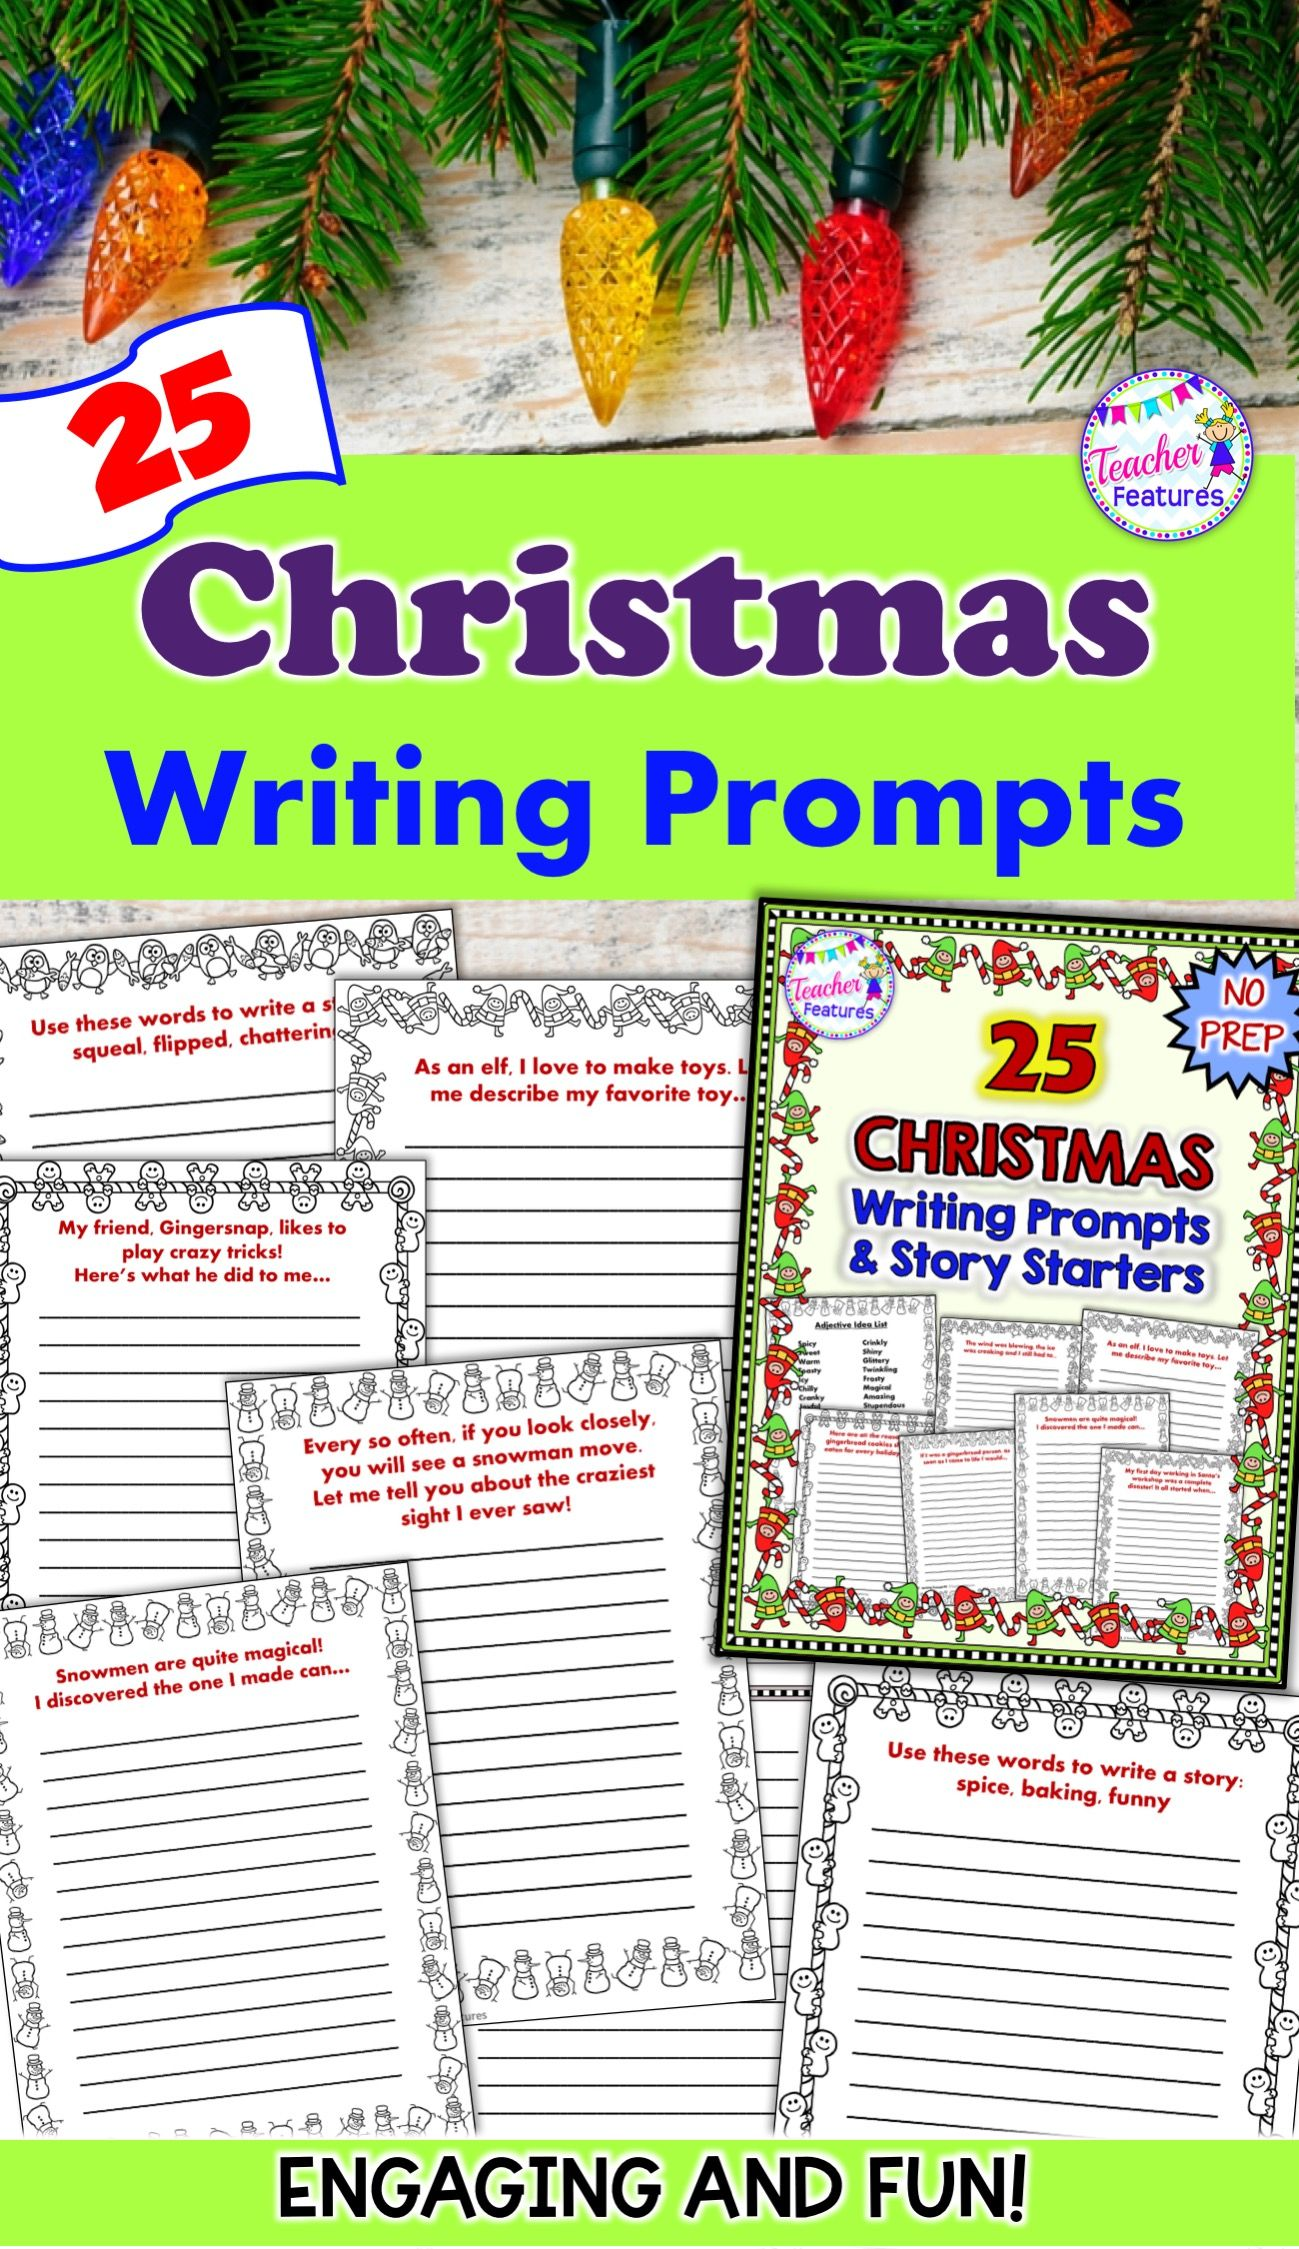 Christmas Writing Prompts 25 No Prep Starters